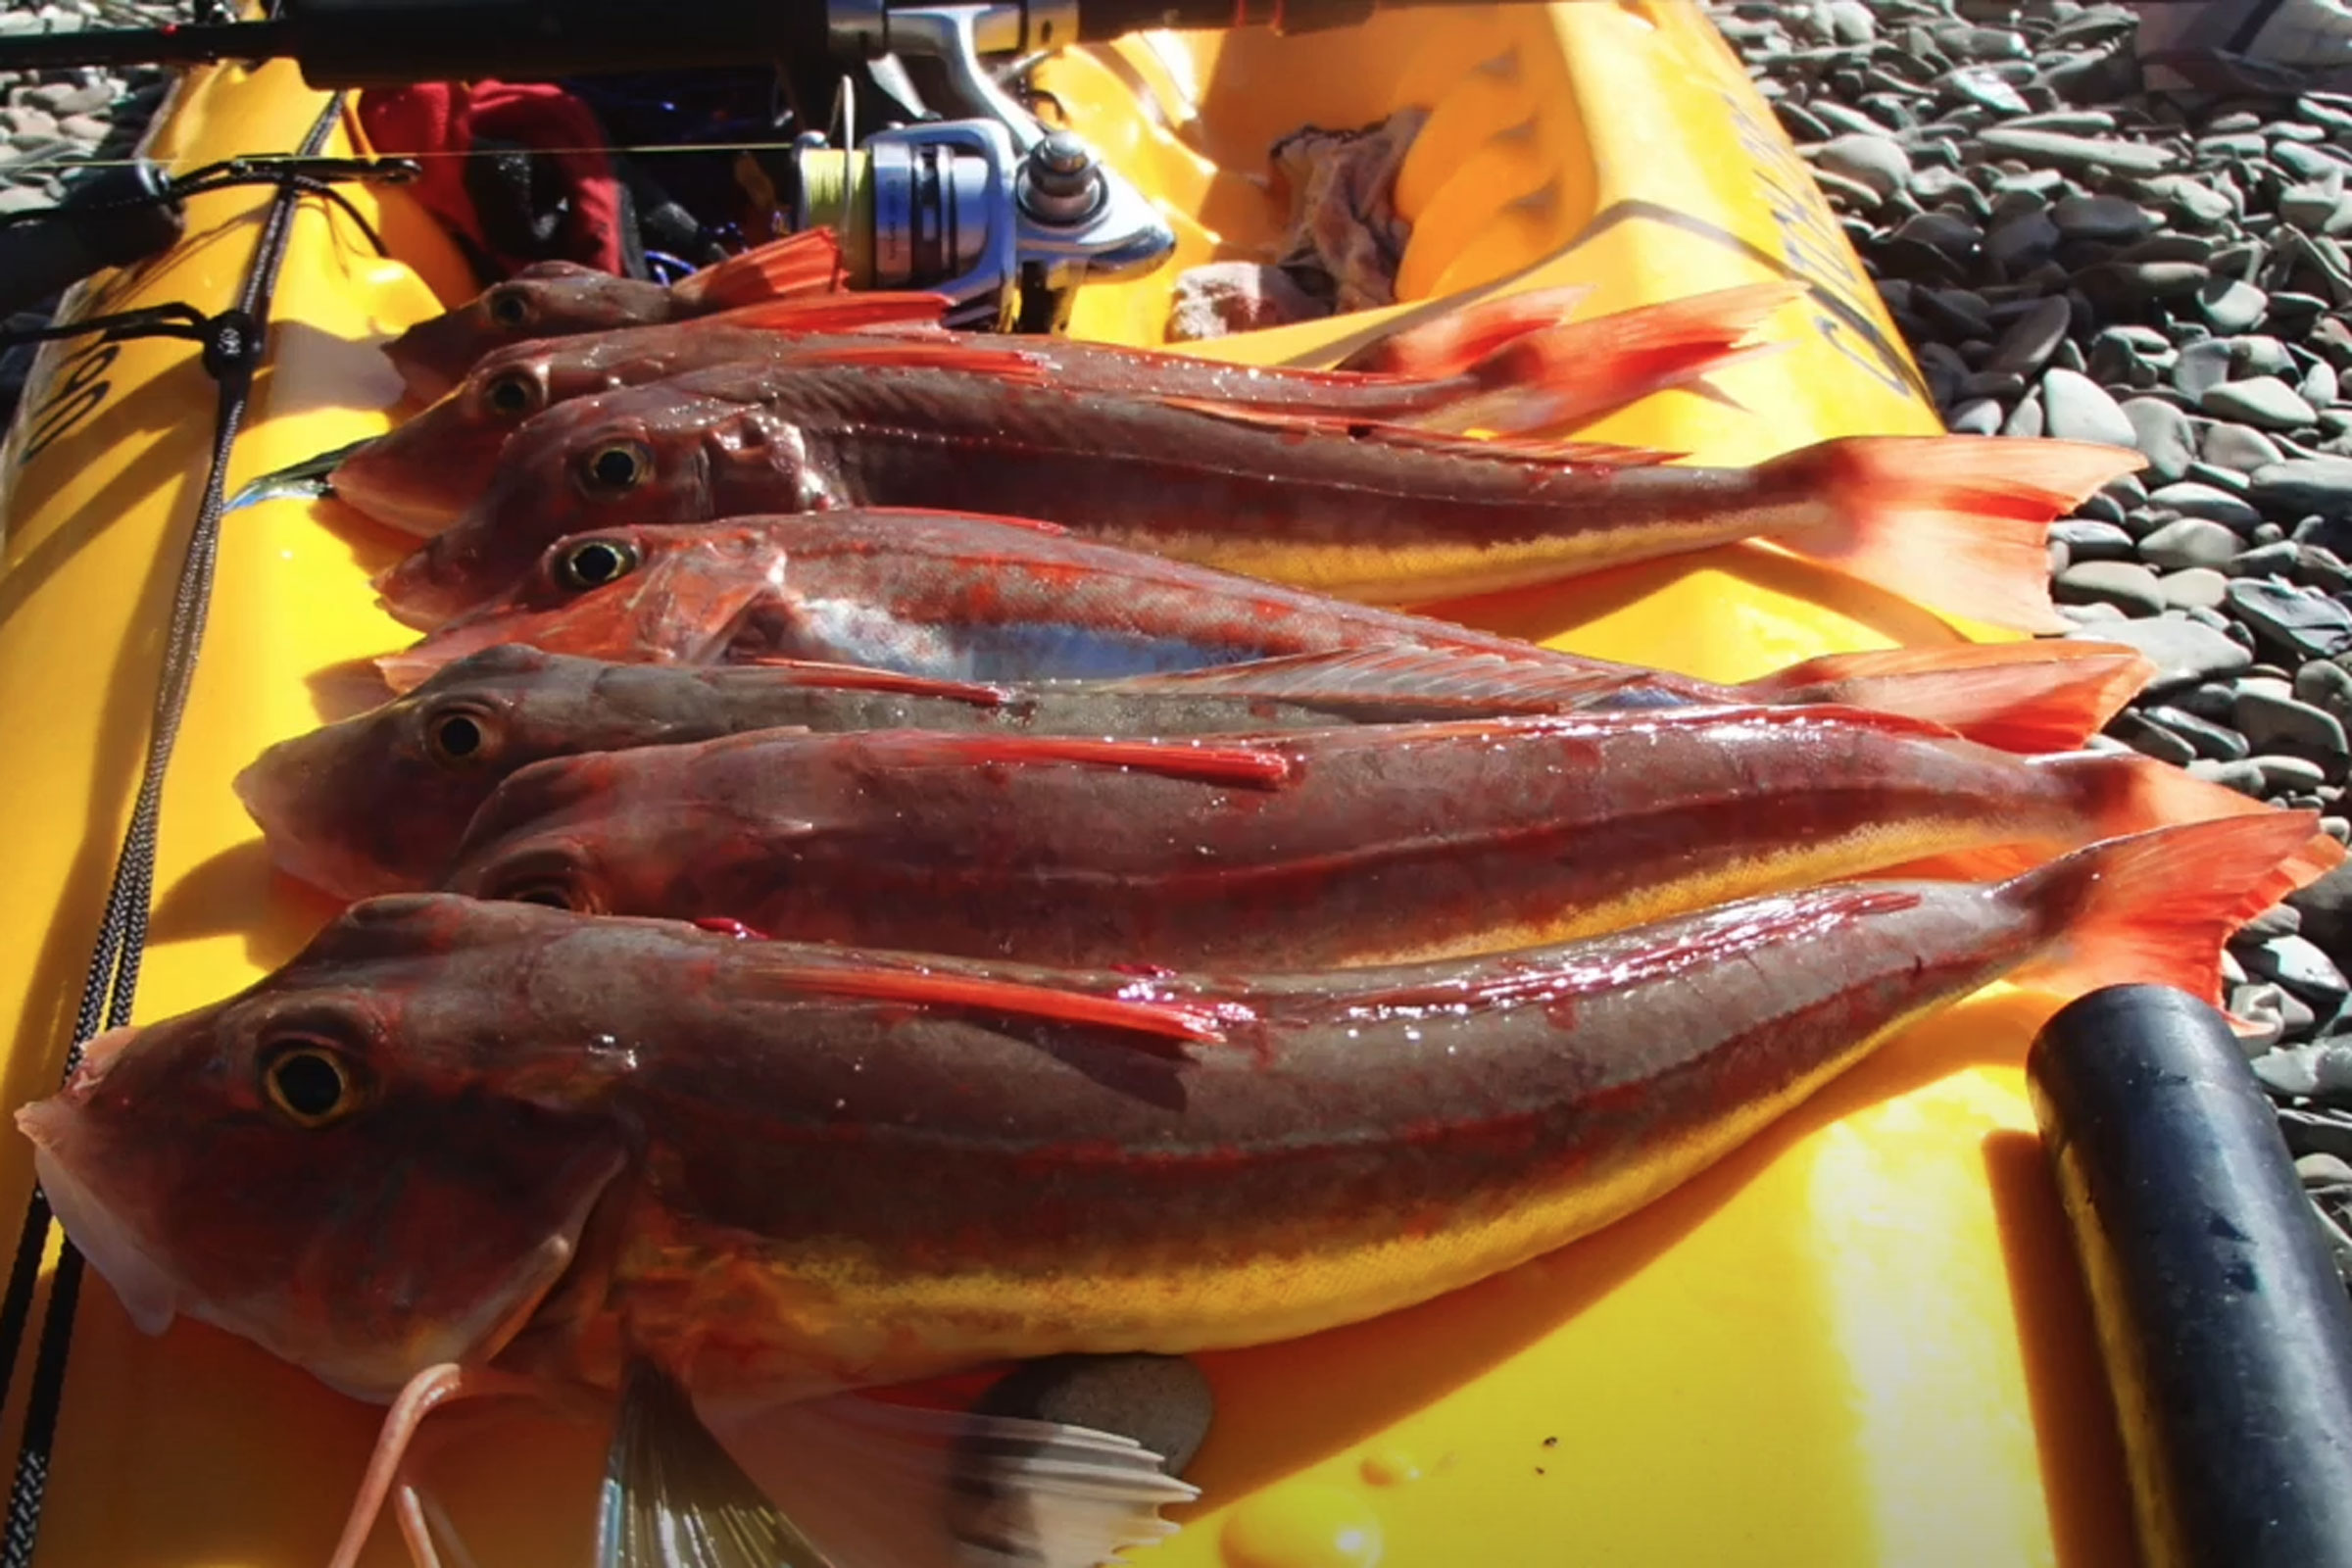 How to rig up for catching gurnard